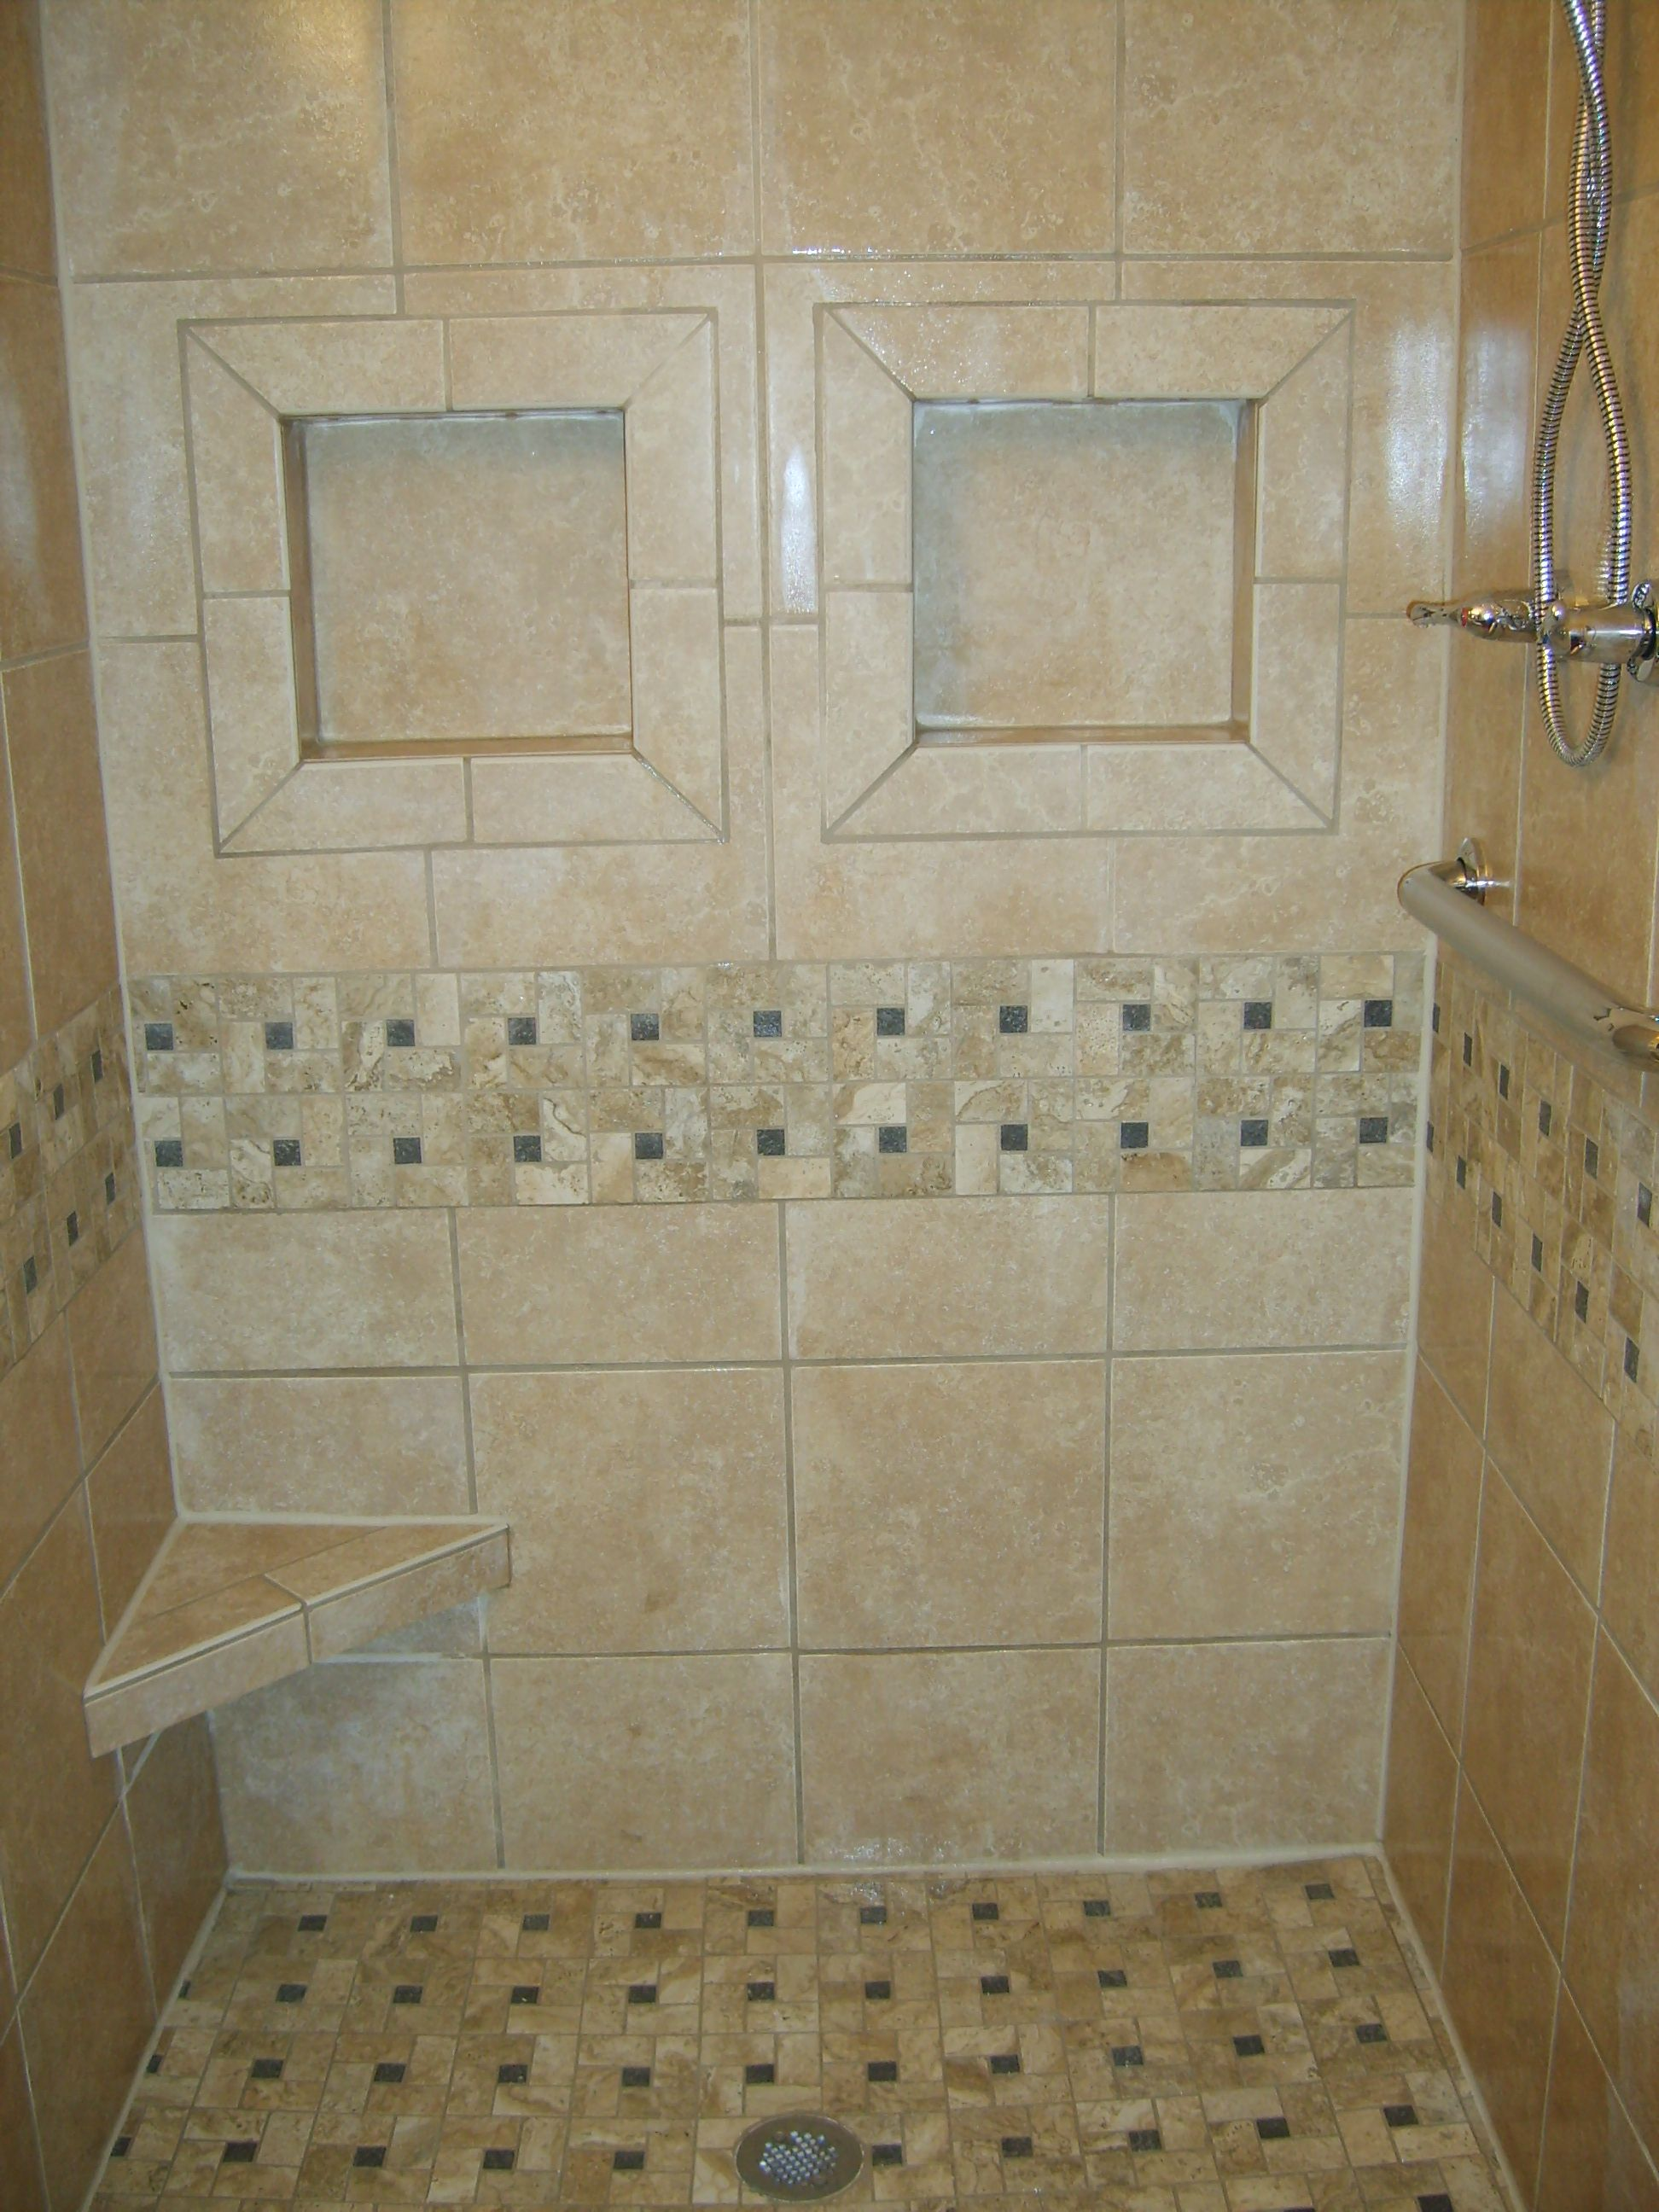 Tile Shower Too Much Of A Pattern With The Trim And Floor With